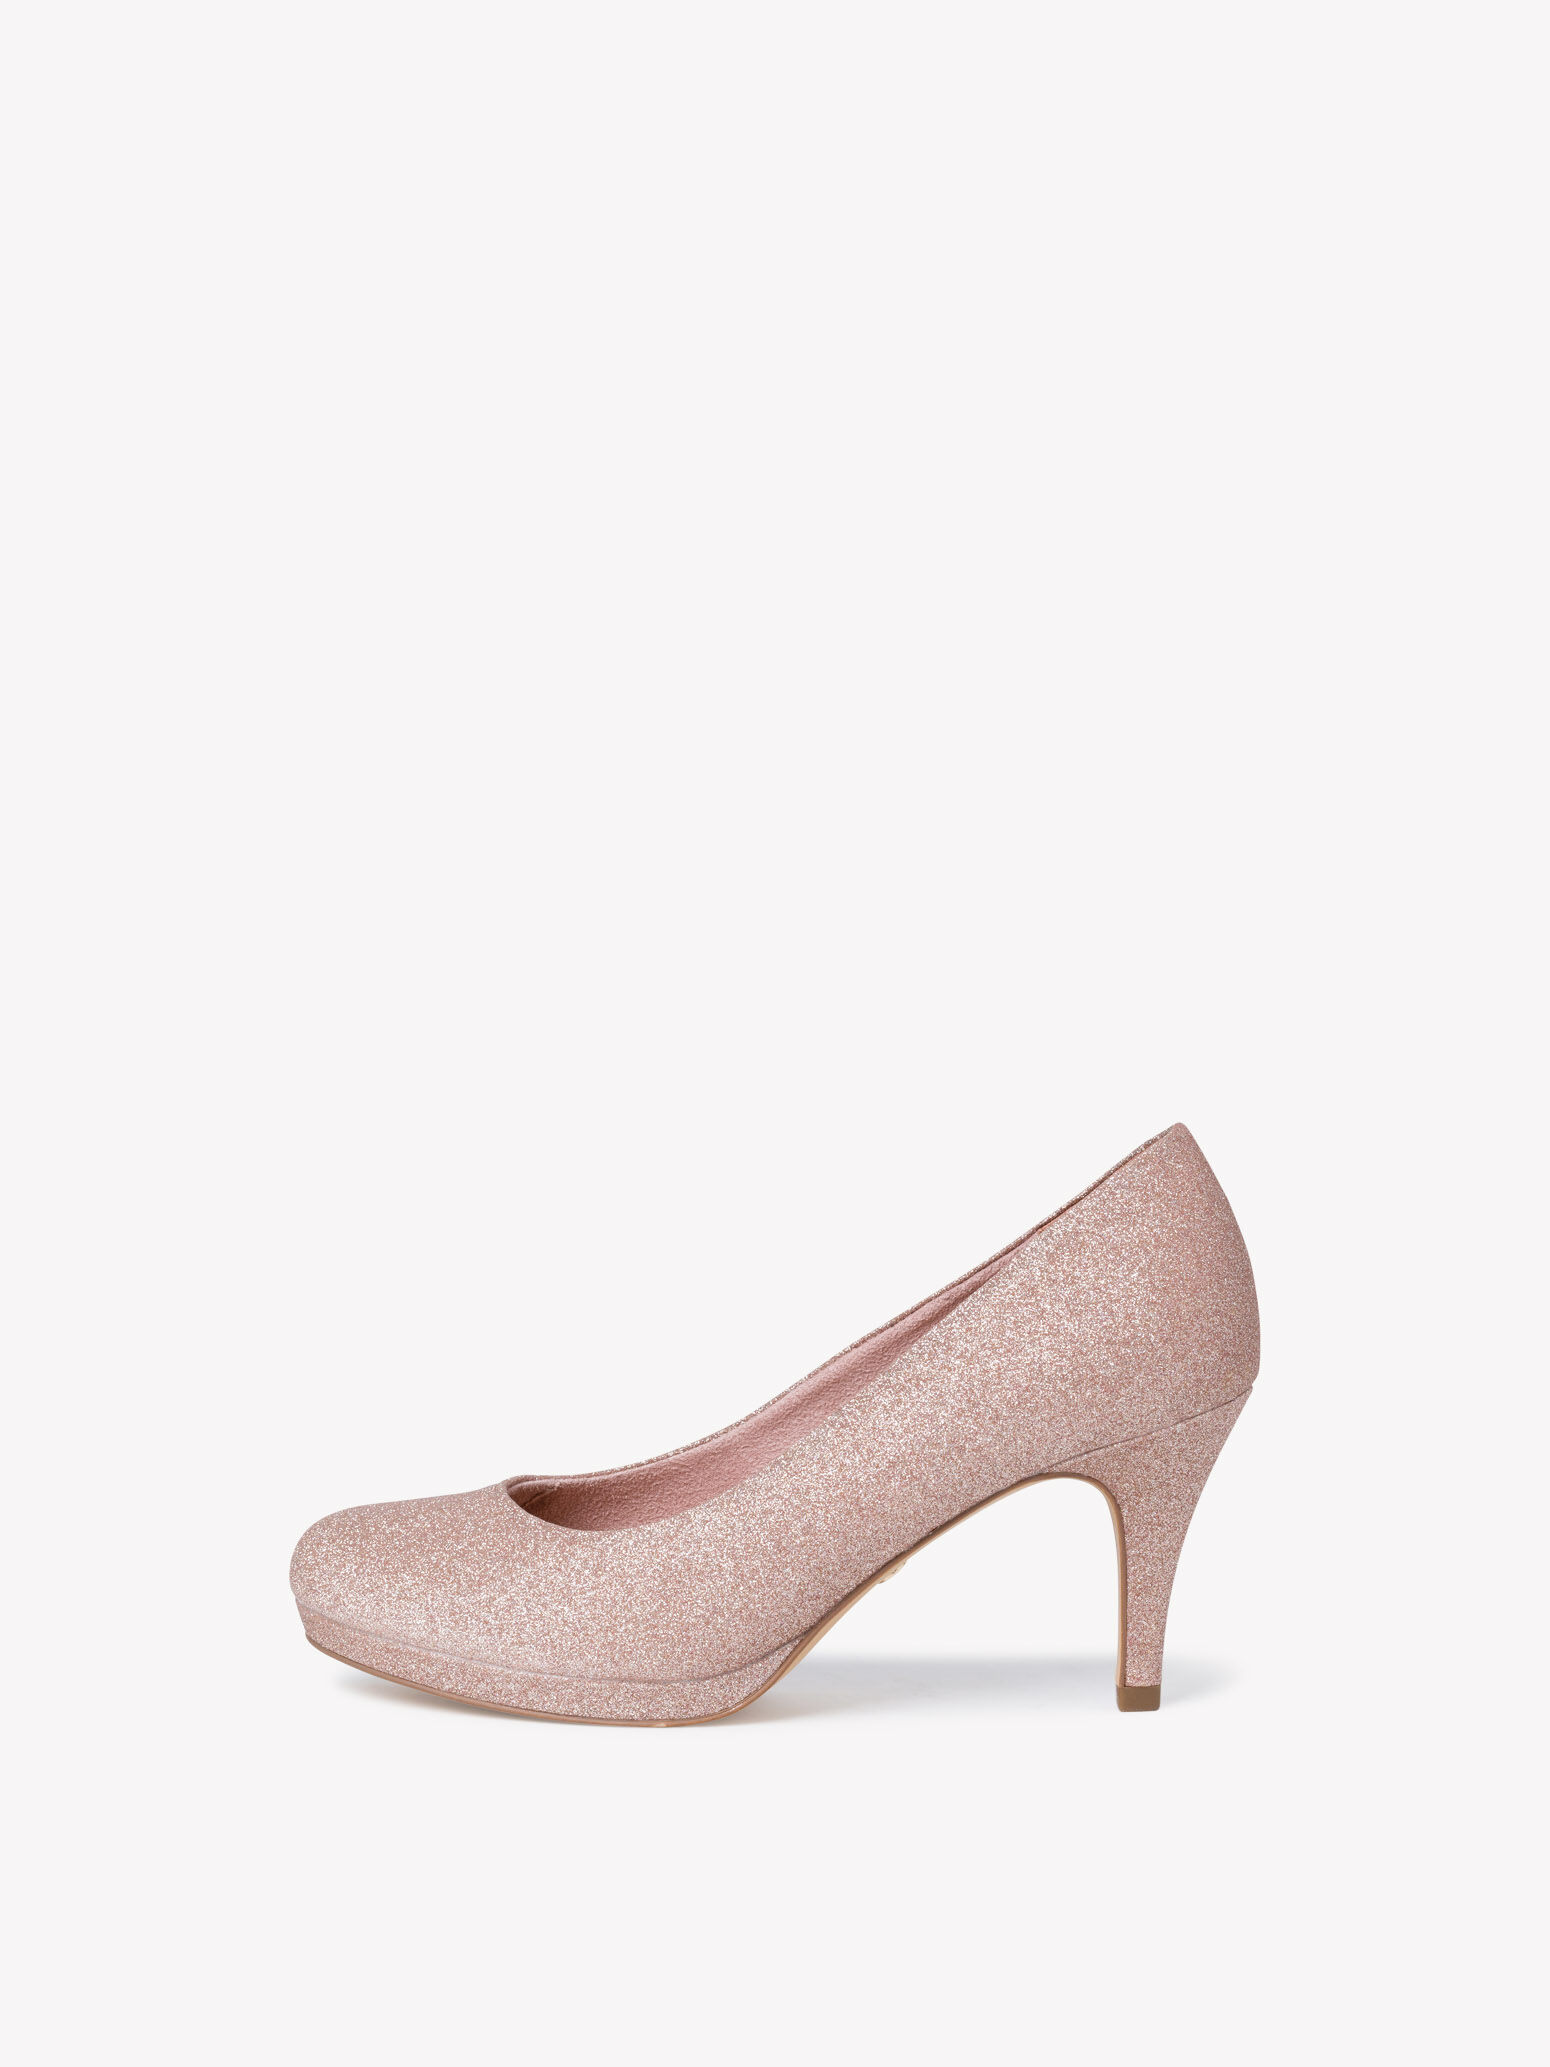 tamaris pumps beige online kaufen, Damen Pumps Damen Pumps